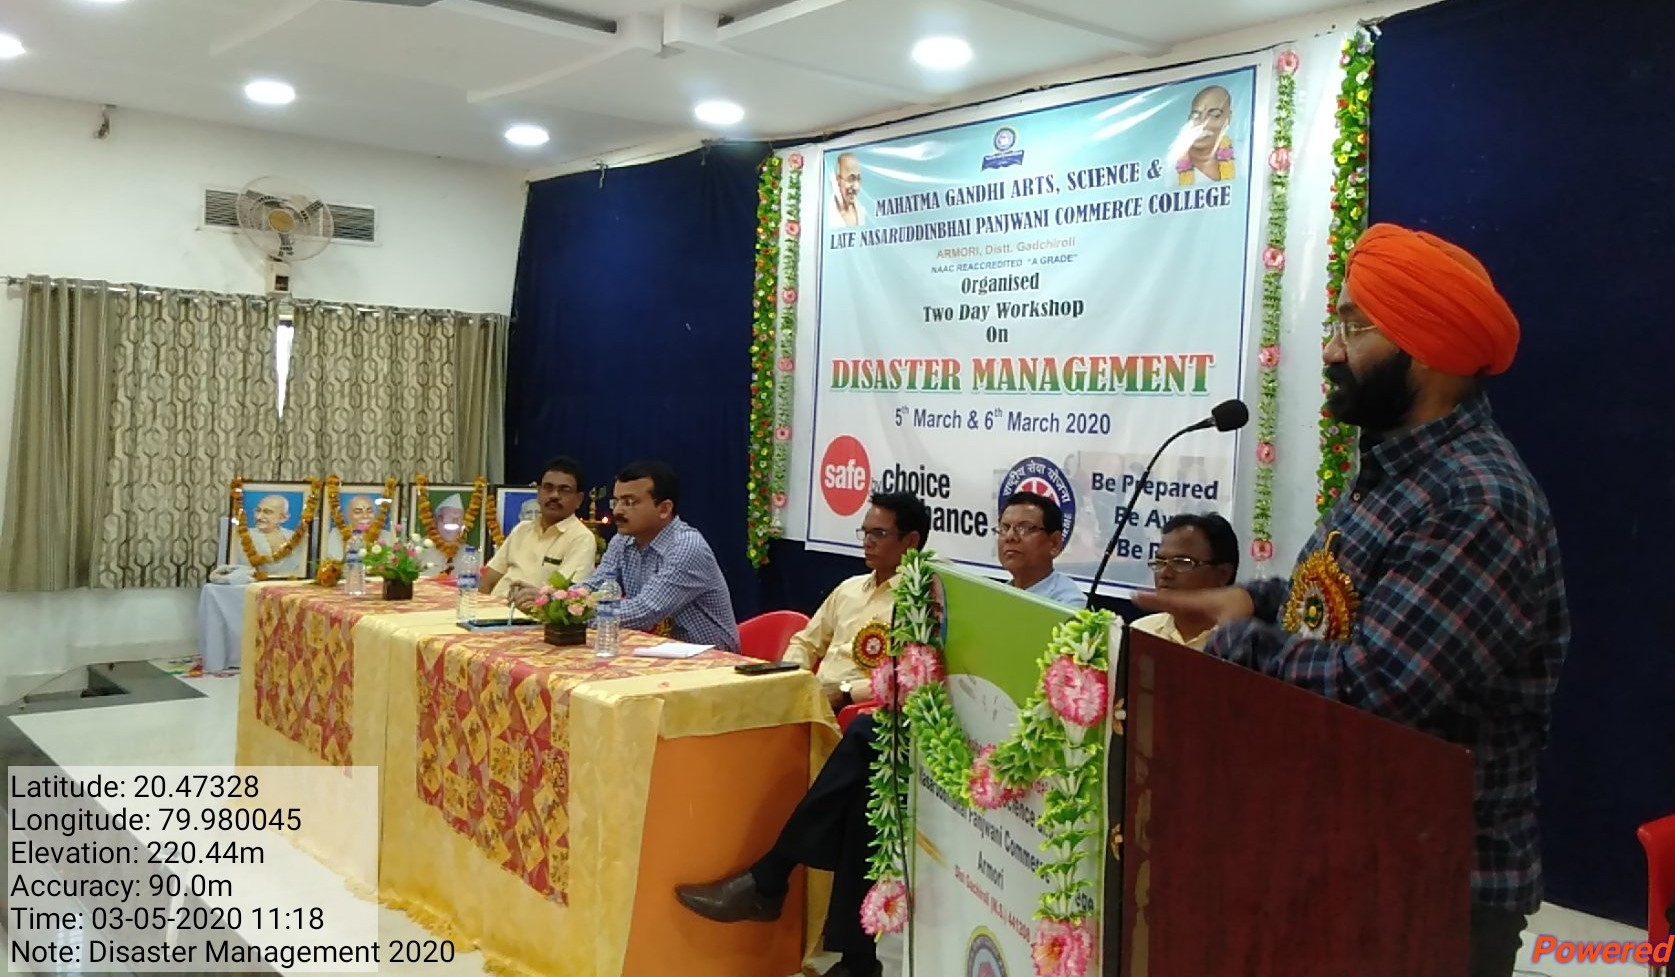 Disaster Management Workshop 05 & 06 March 2020